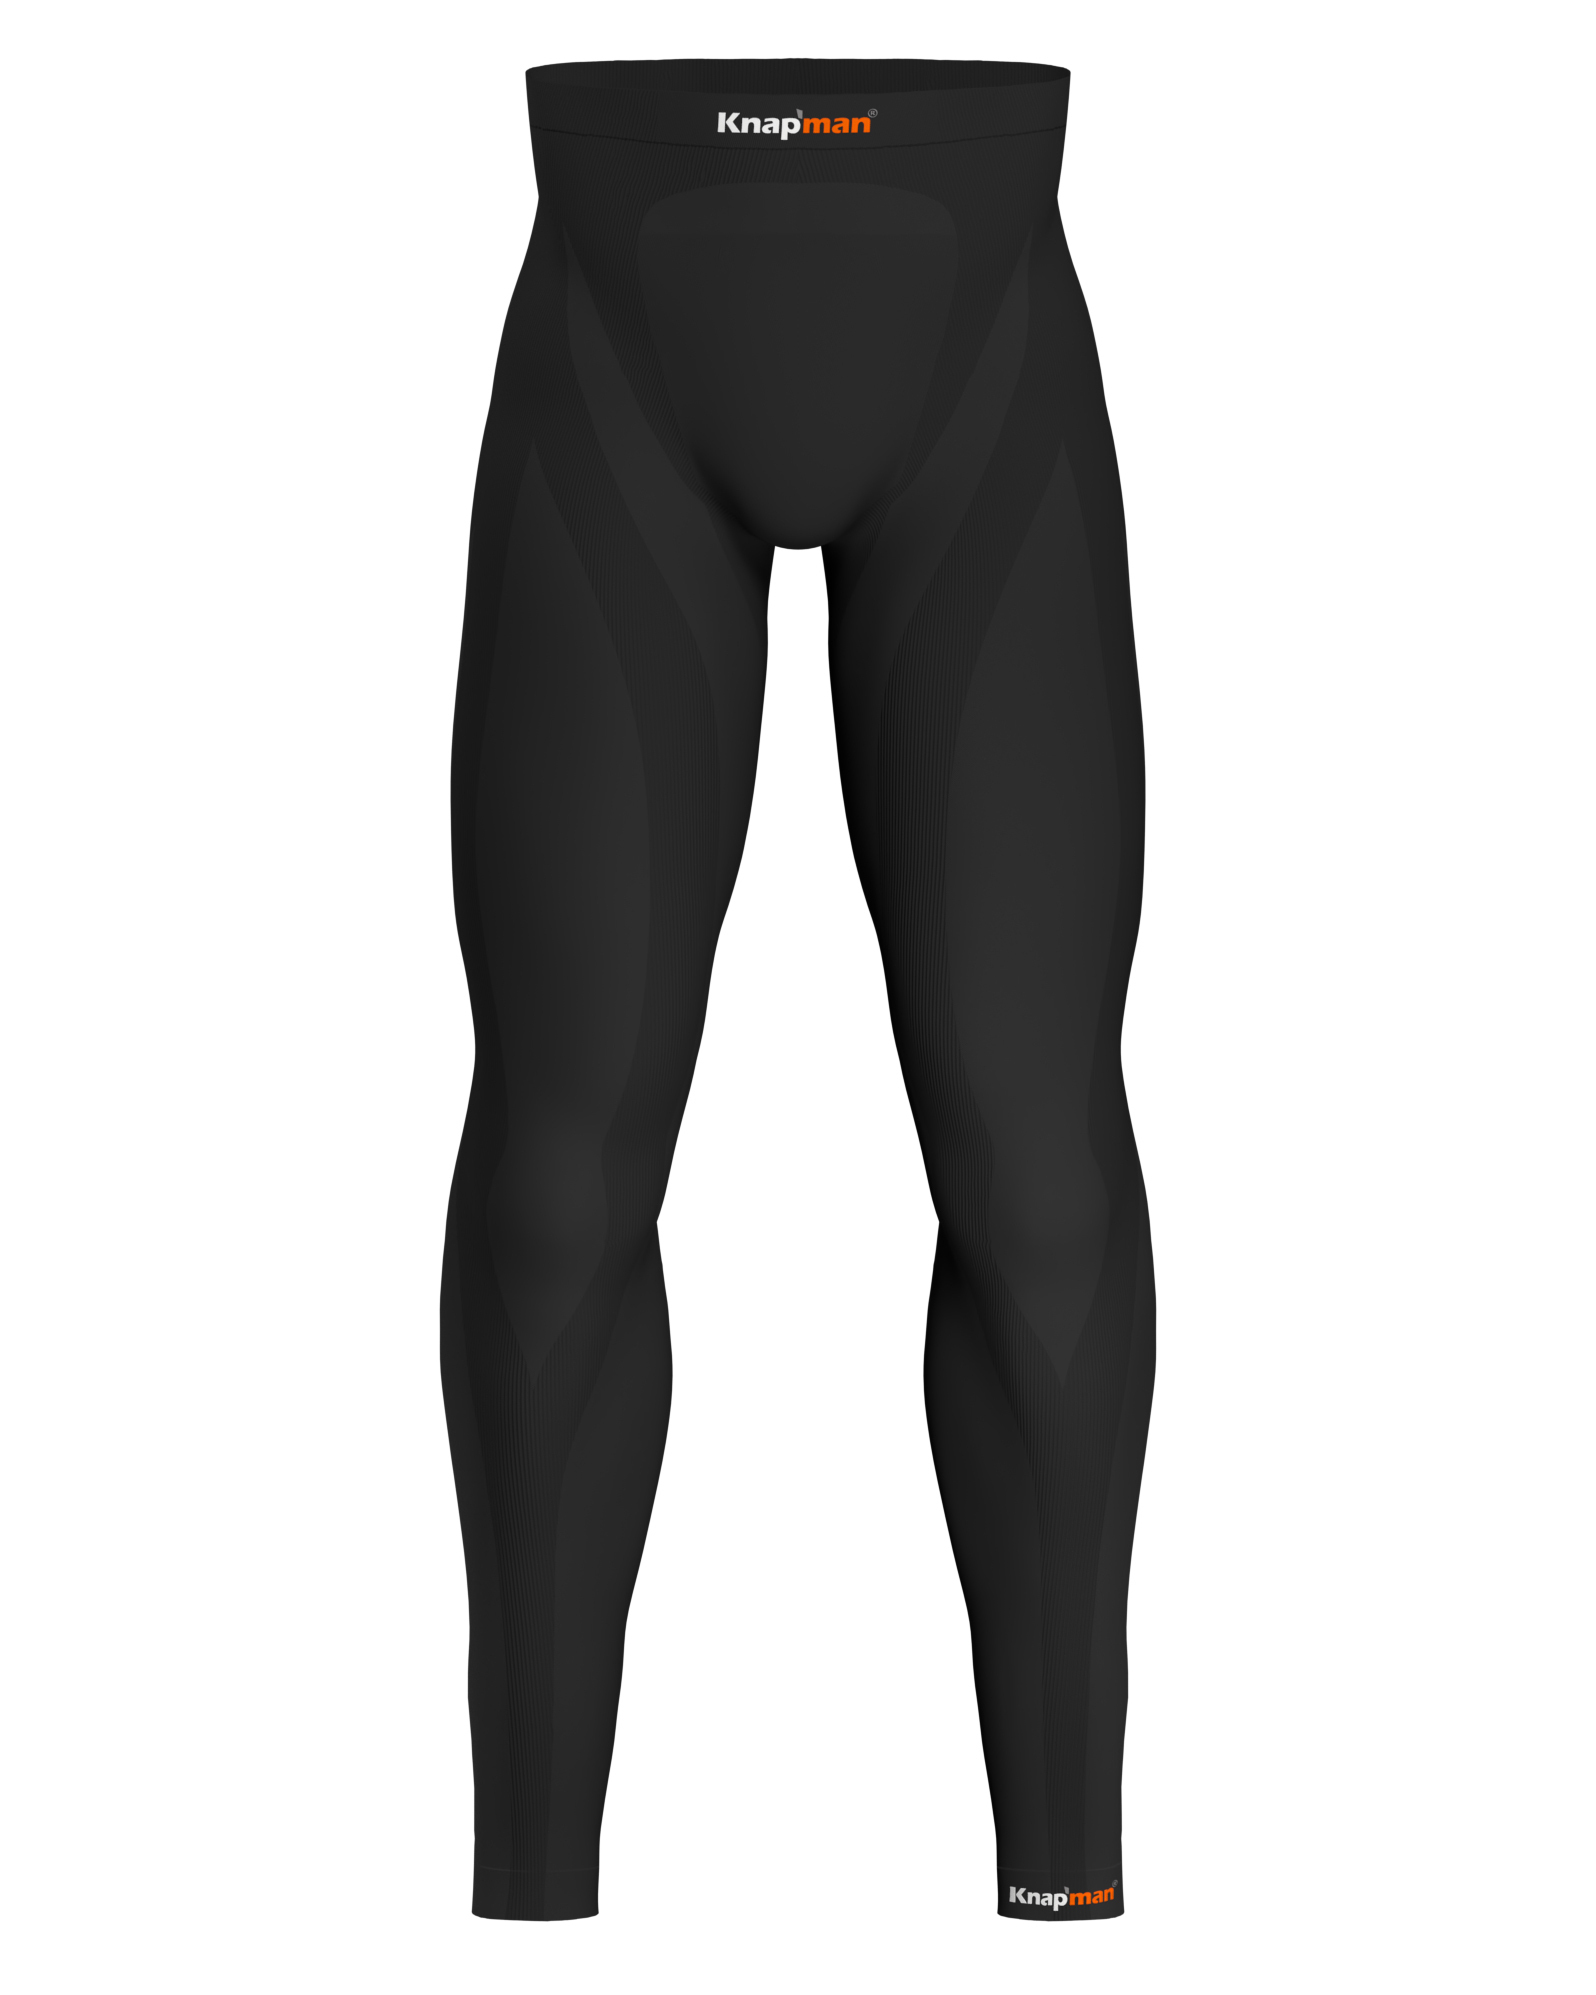 Knap'man Zoned Compression Tights 45%